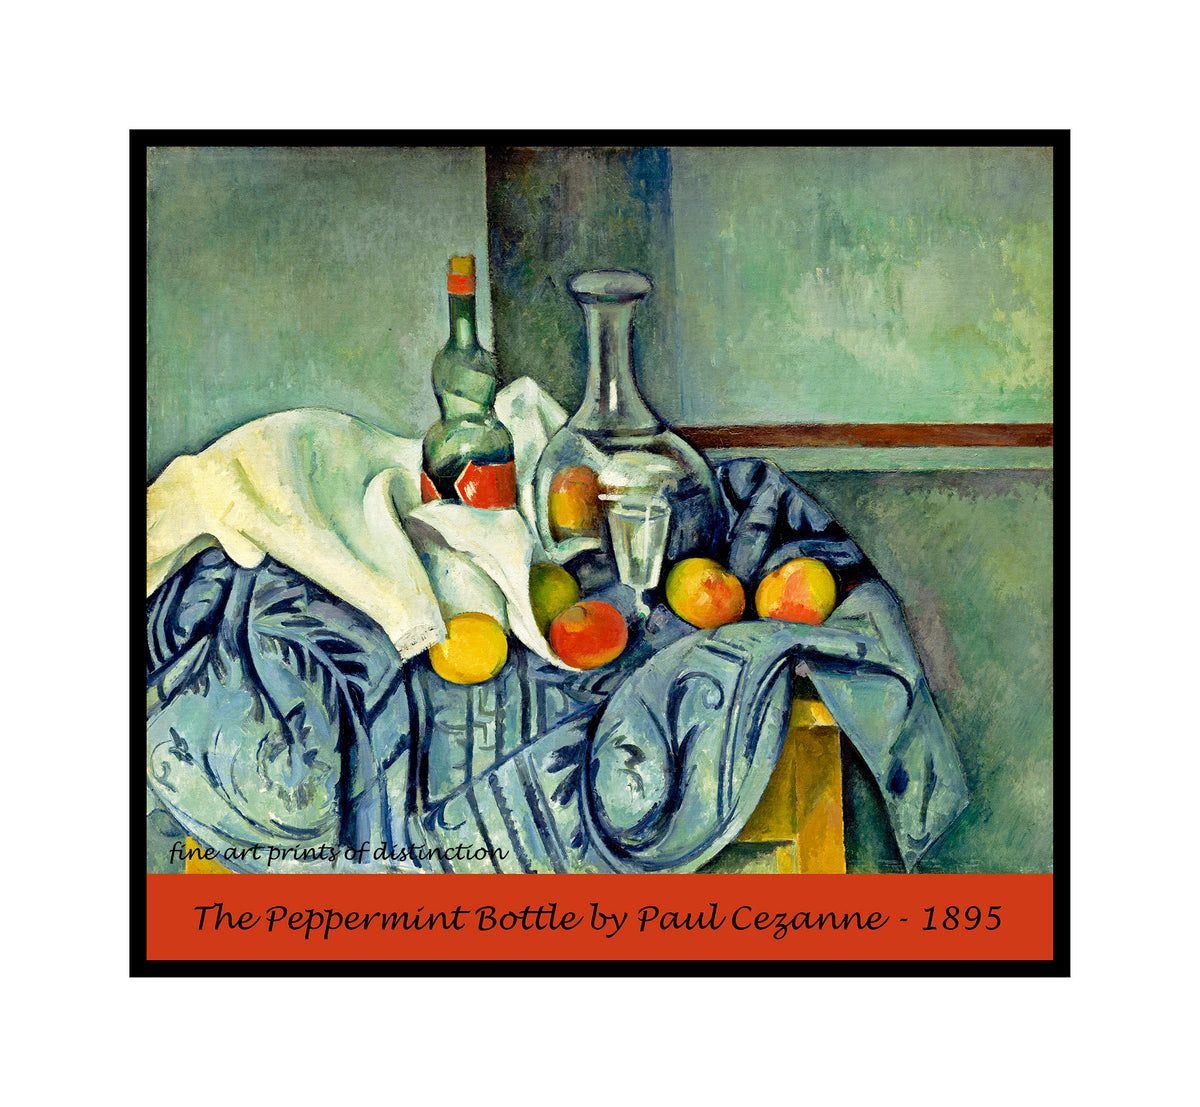 A premium poster of The Peppermint Bottle painted by Paul Cezanne in 1895